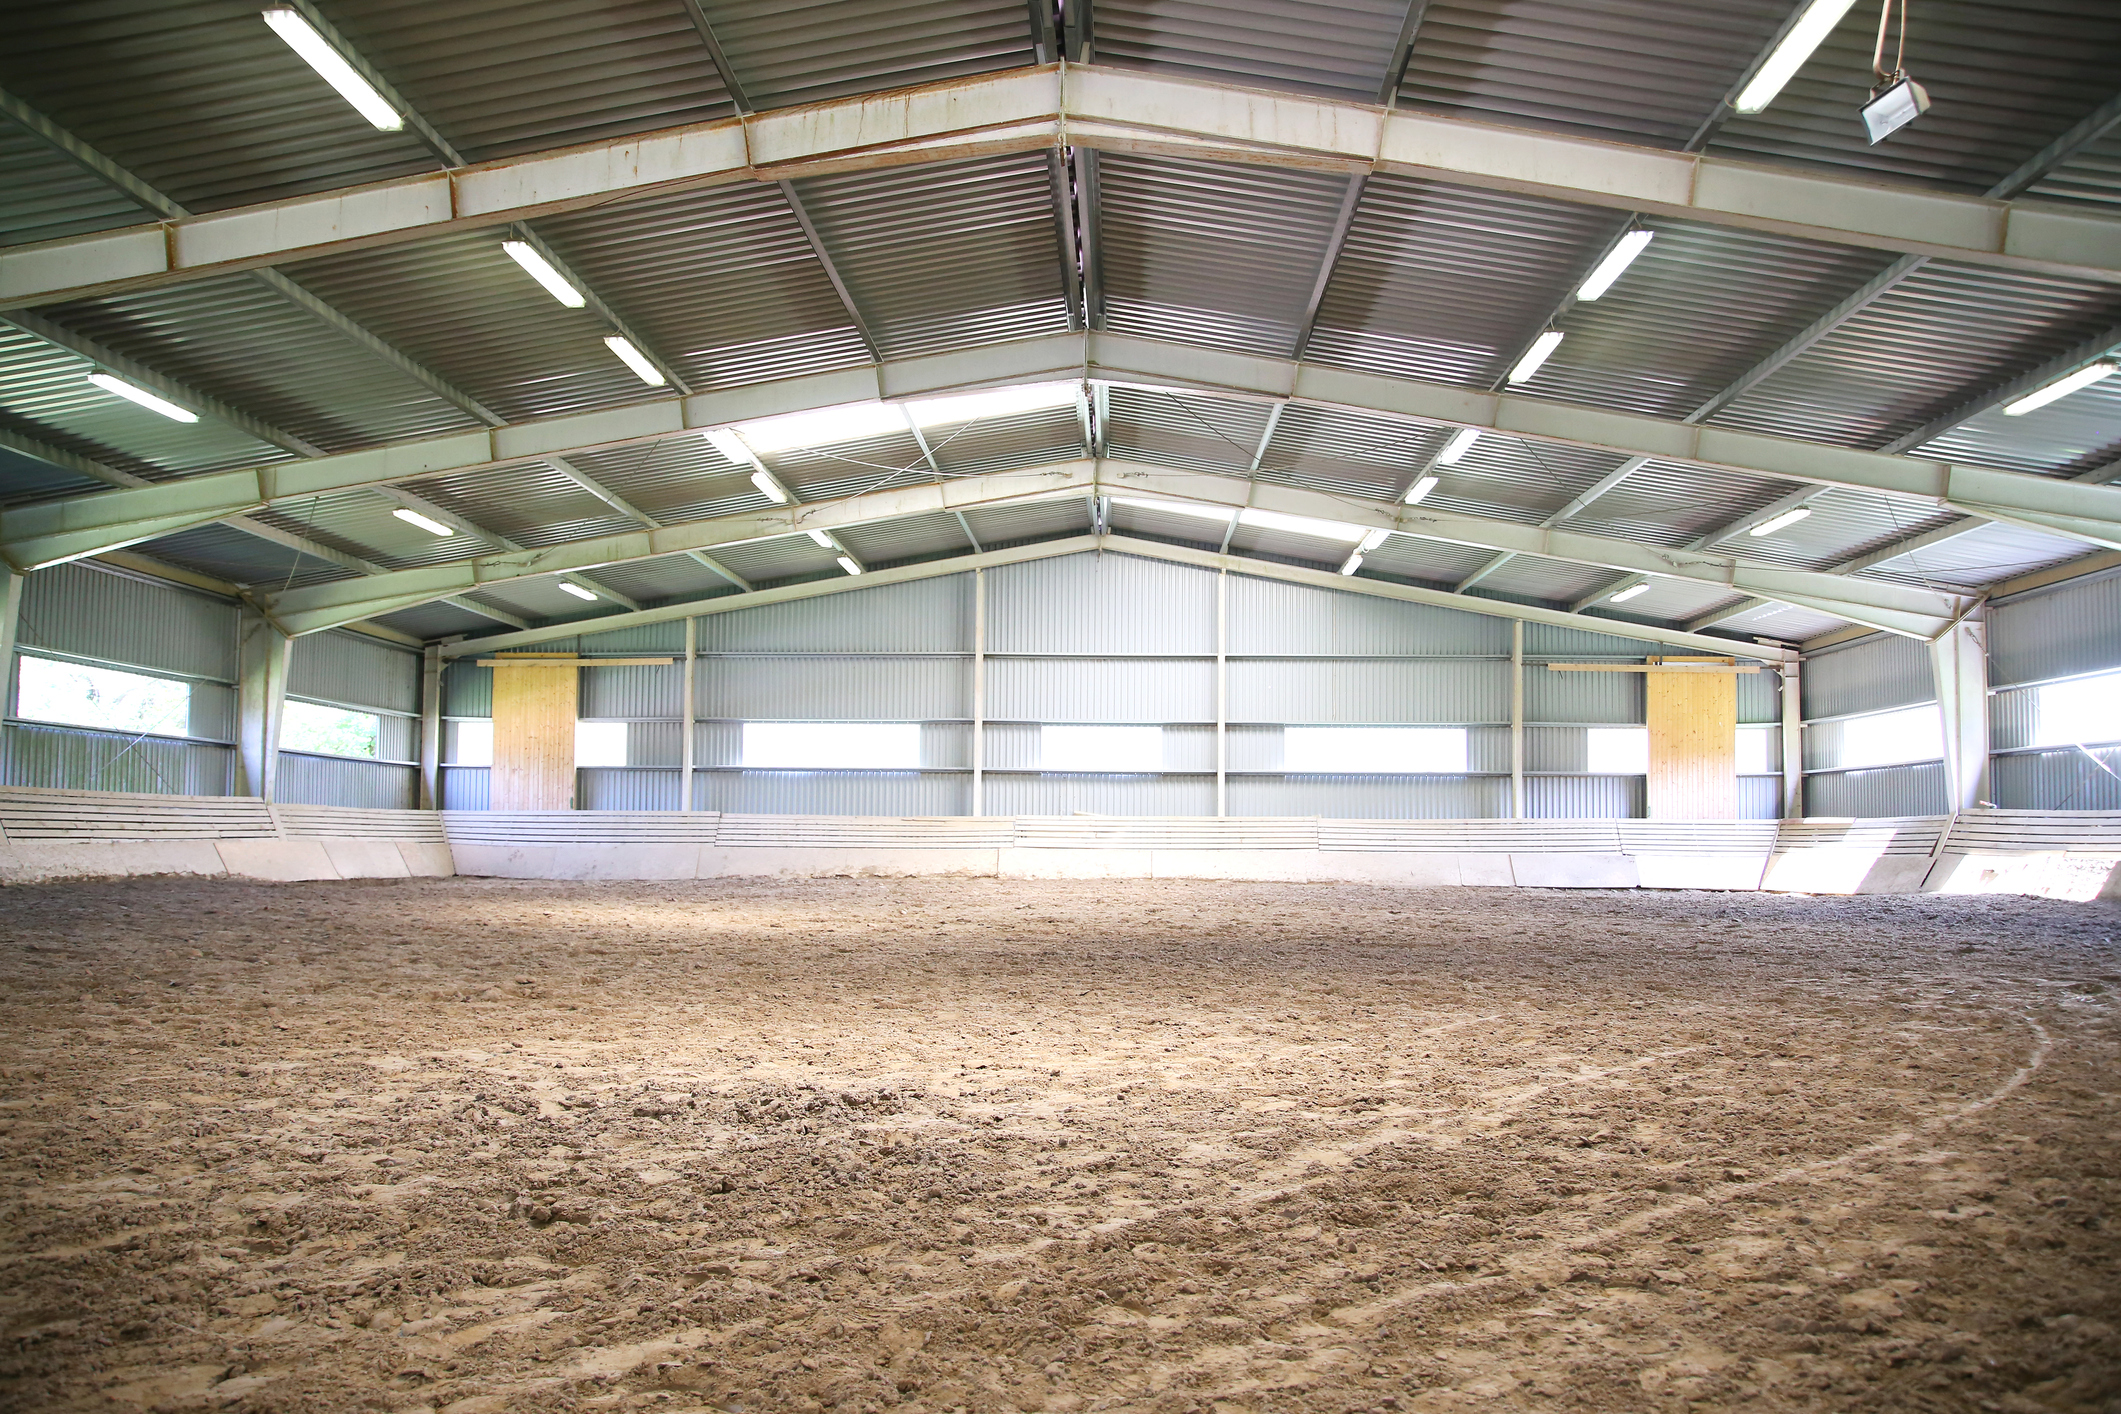 View-an-indoor-riding-arena-backlight-584570136_2125x1416.jpeg